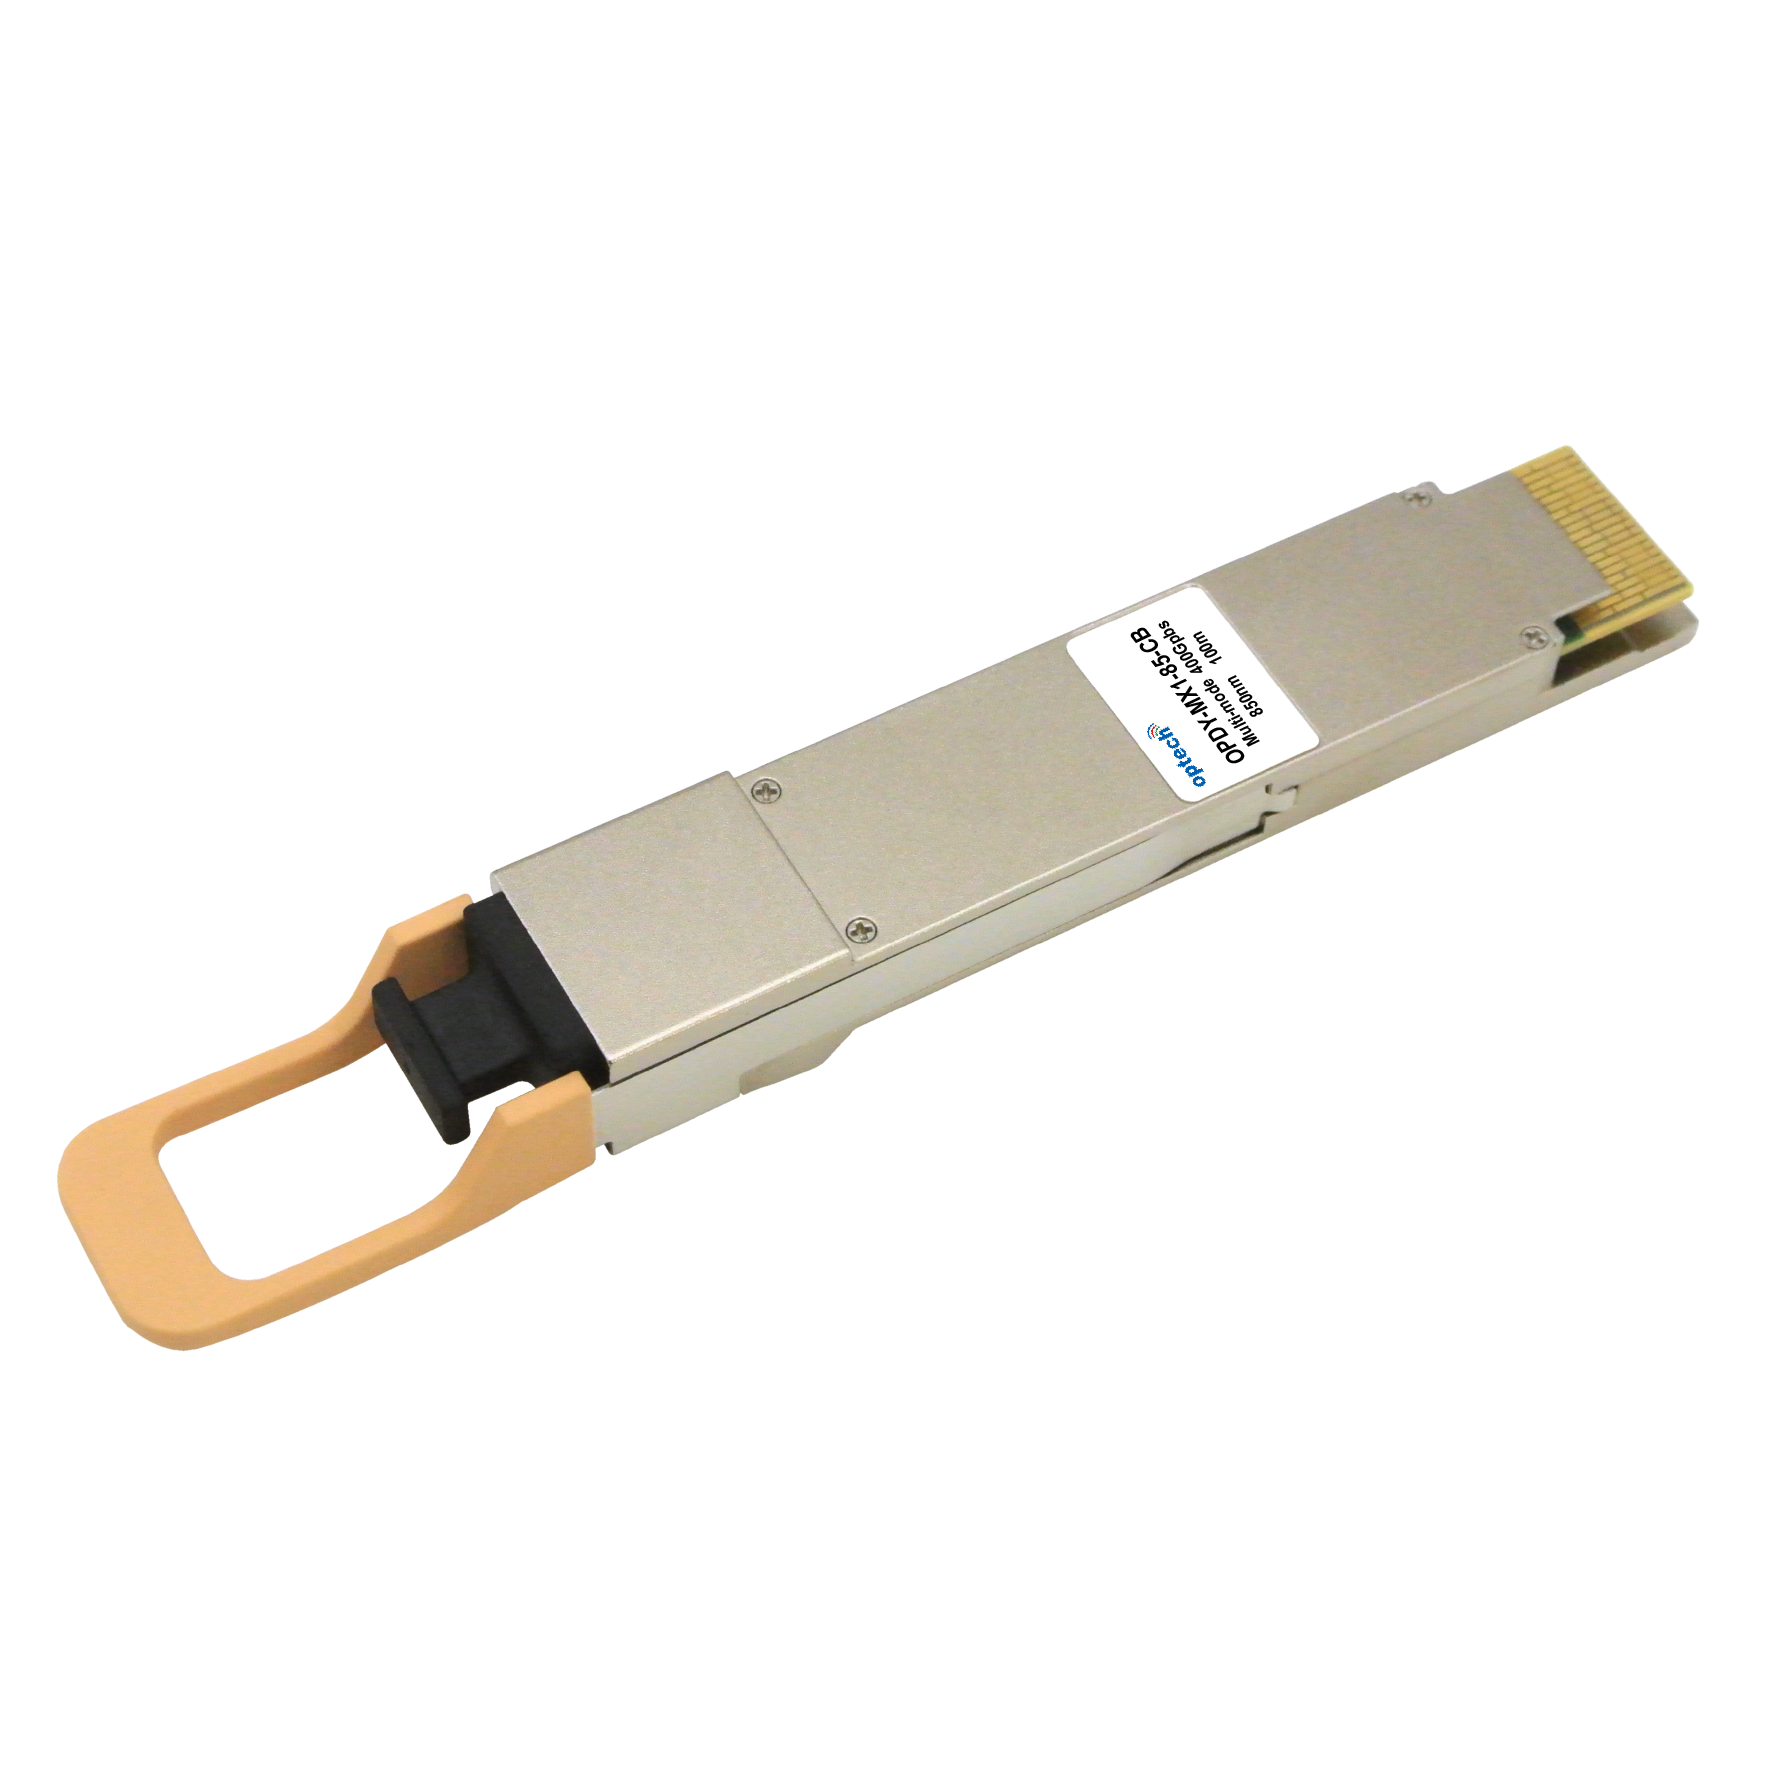 QSFP-DD 400G SR8 70M MMF OPTICAL TRANSCEIVER OPDY-MX1-85-CB